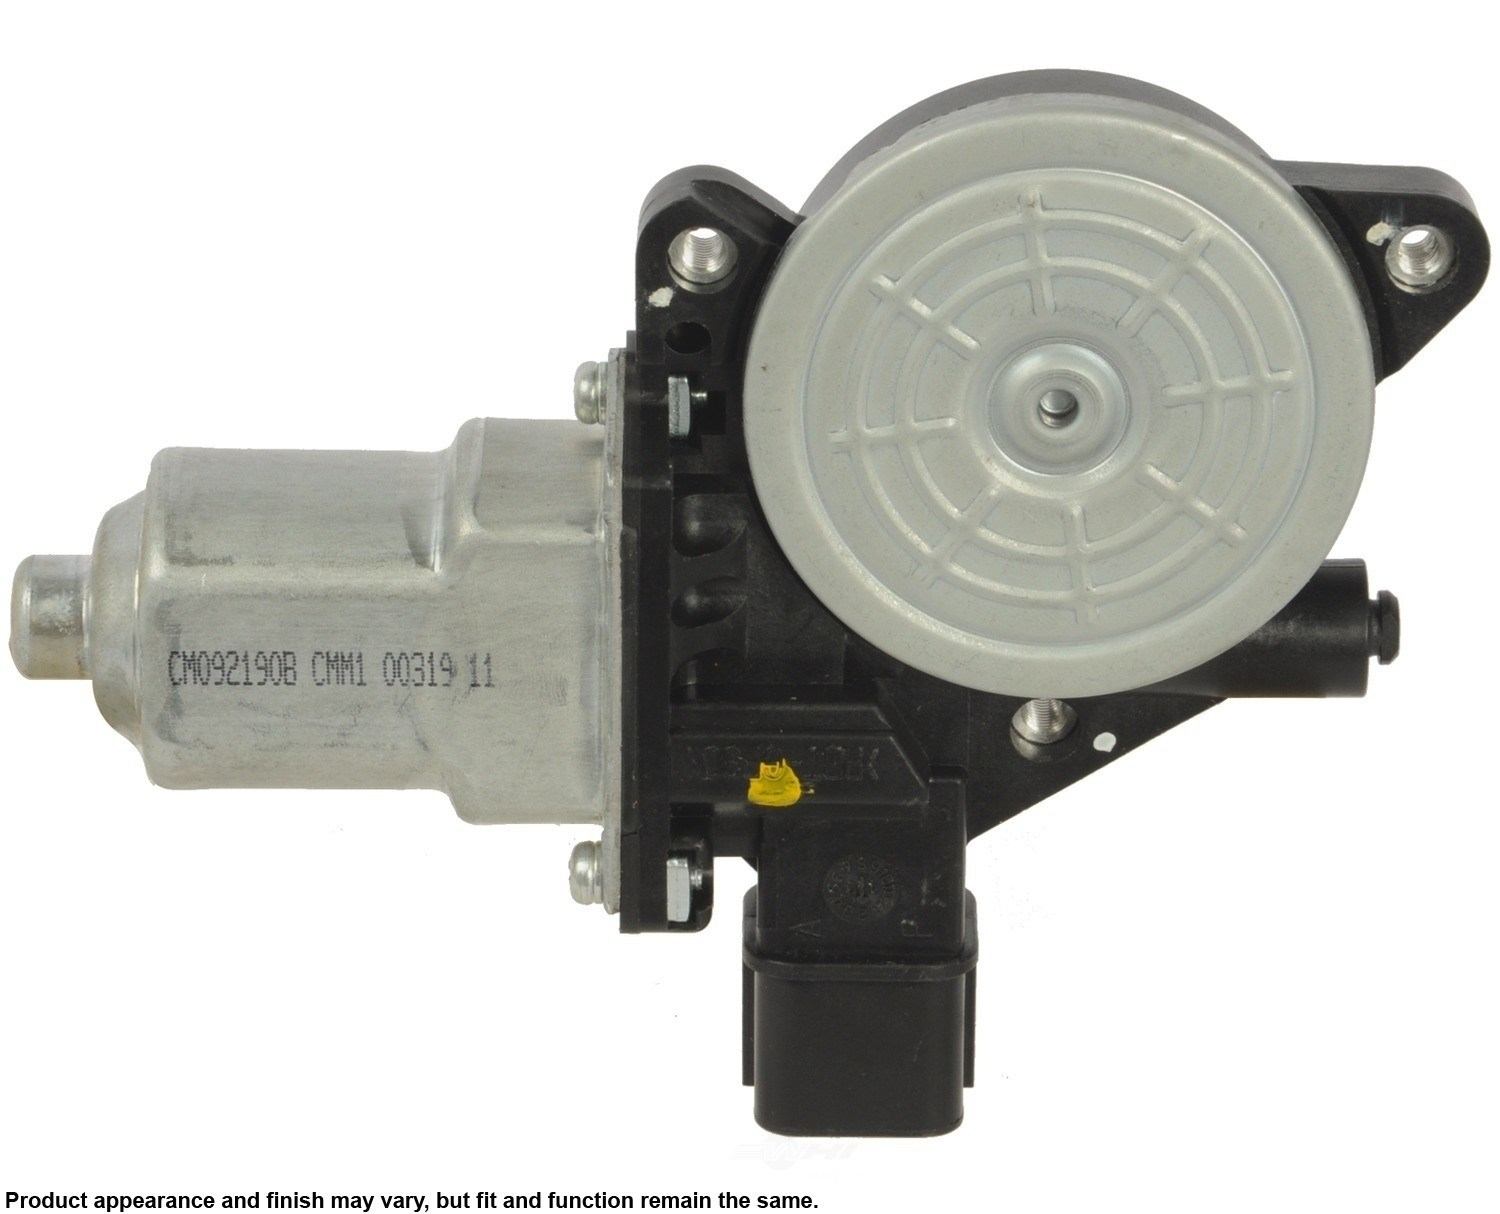 CARDONE / CARDONE SELECT - New Cardone Select Window Lift Motor - A1S 82-15030